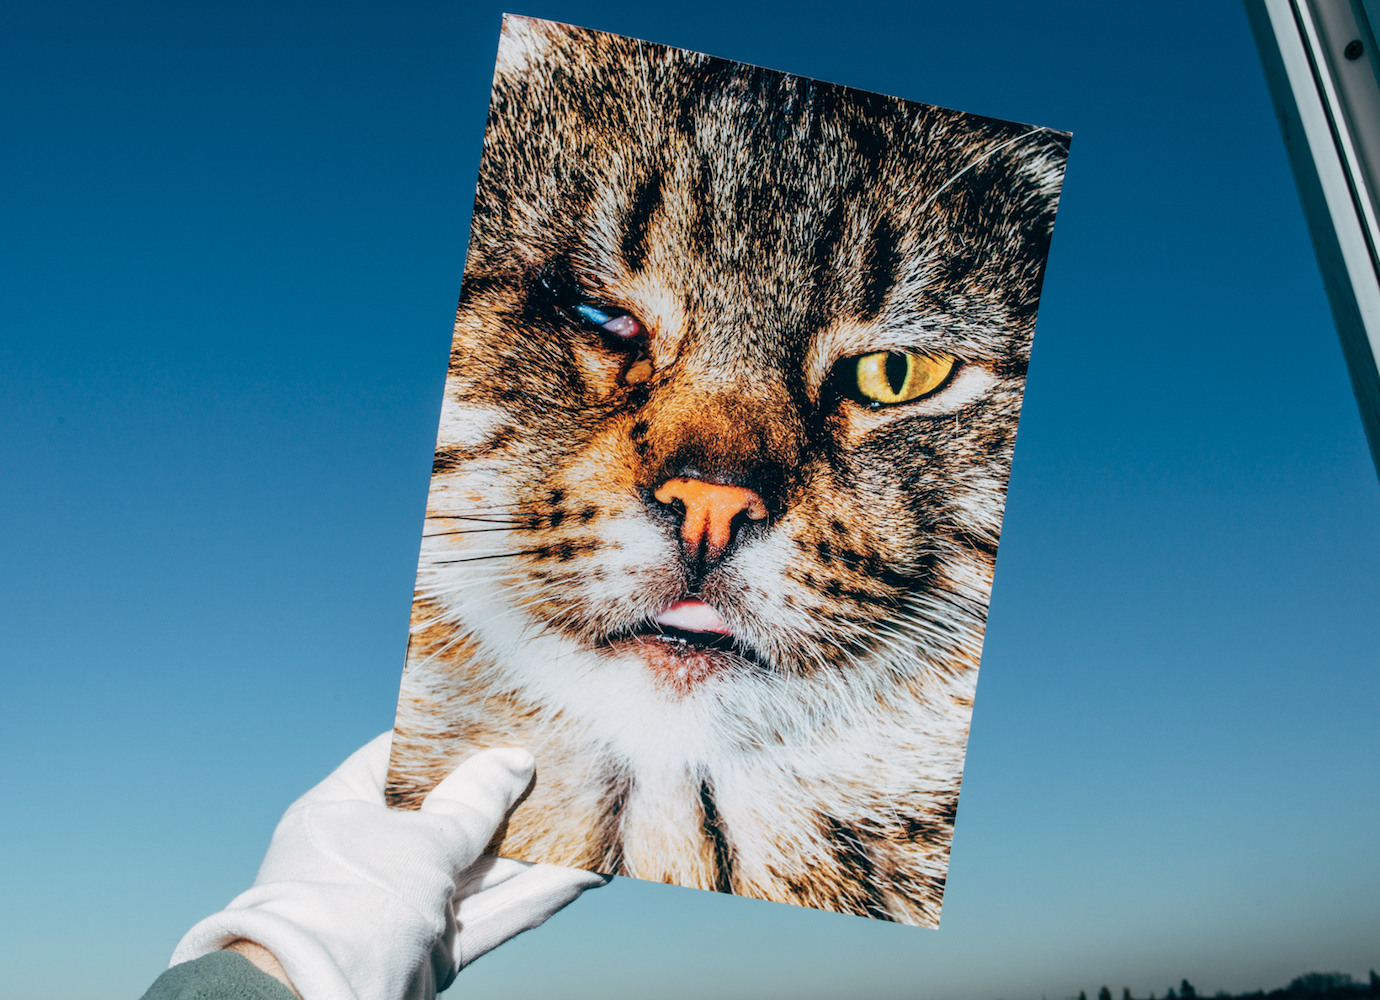 This zine shows the struggles of street cats by turning strays into cover stars